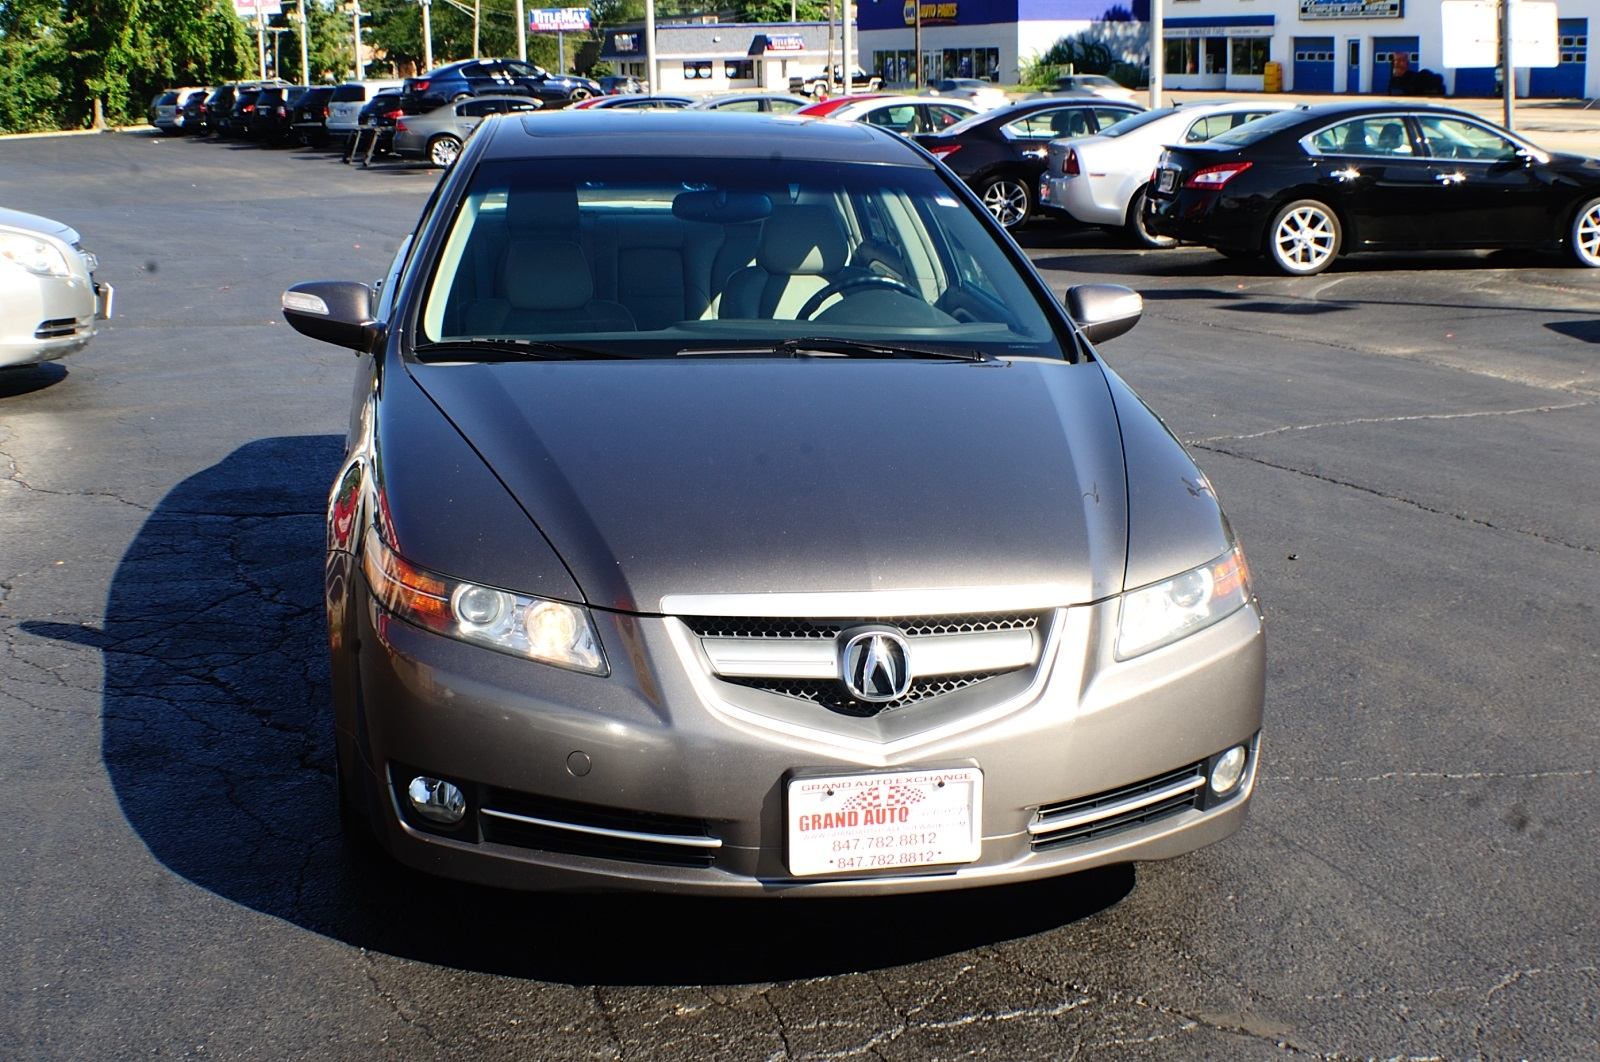 2007 Acura TL Gray Metallic Sedan Sale Used Car Sale Gurnee Kenosha Mchenry Chicago Illinois